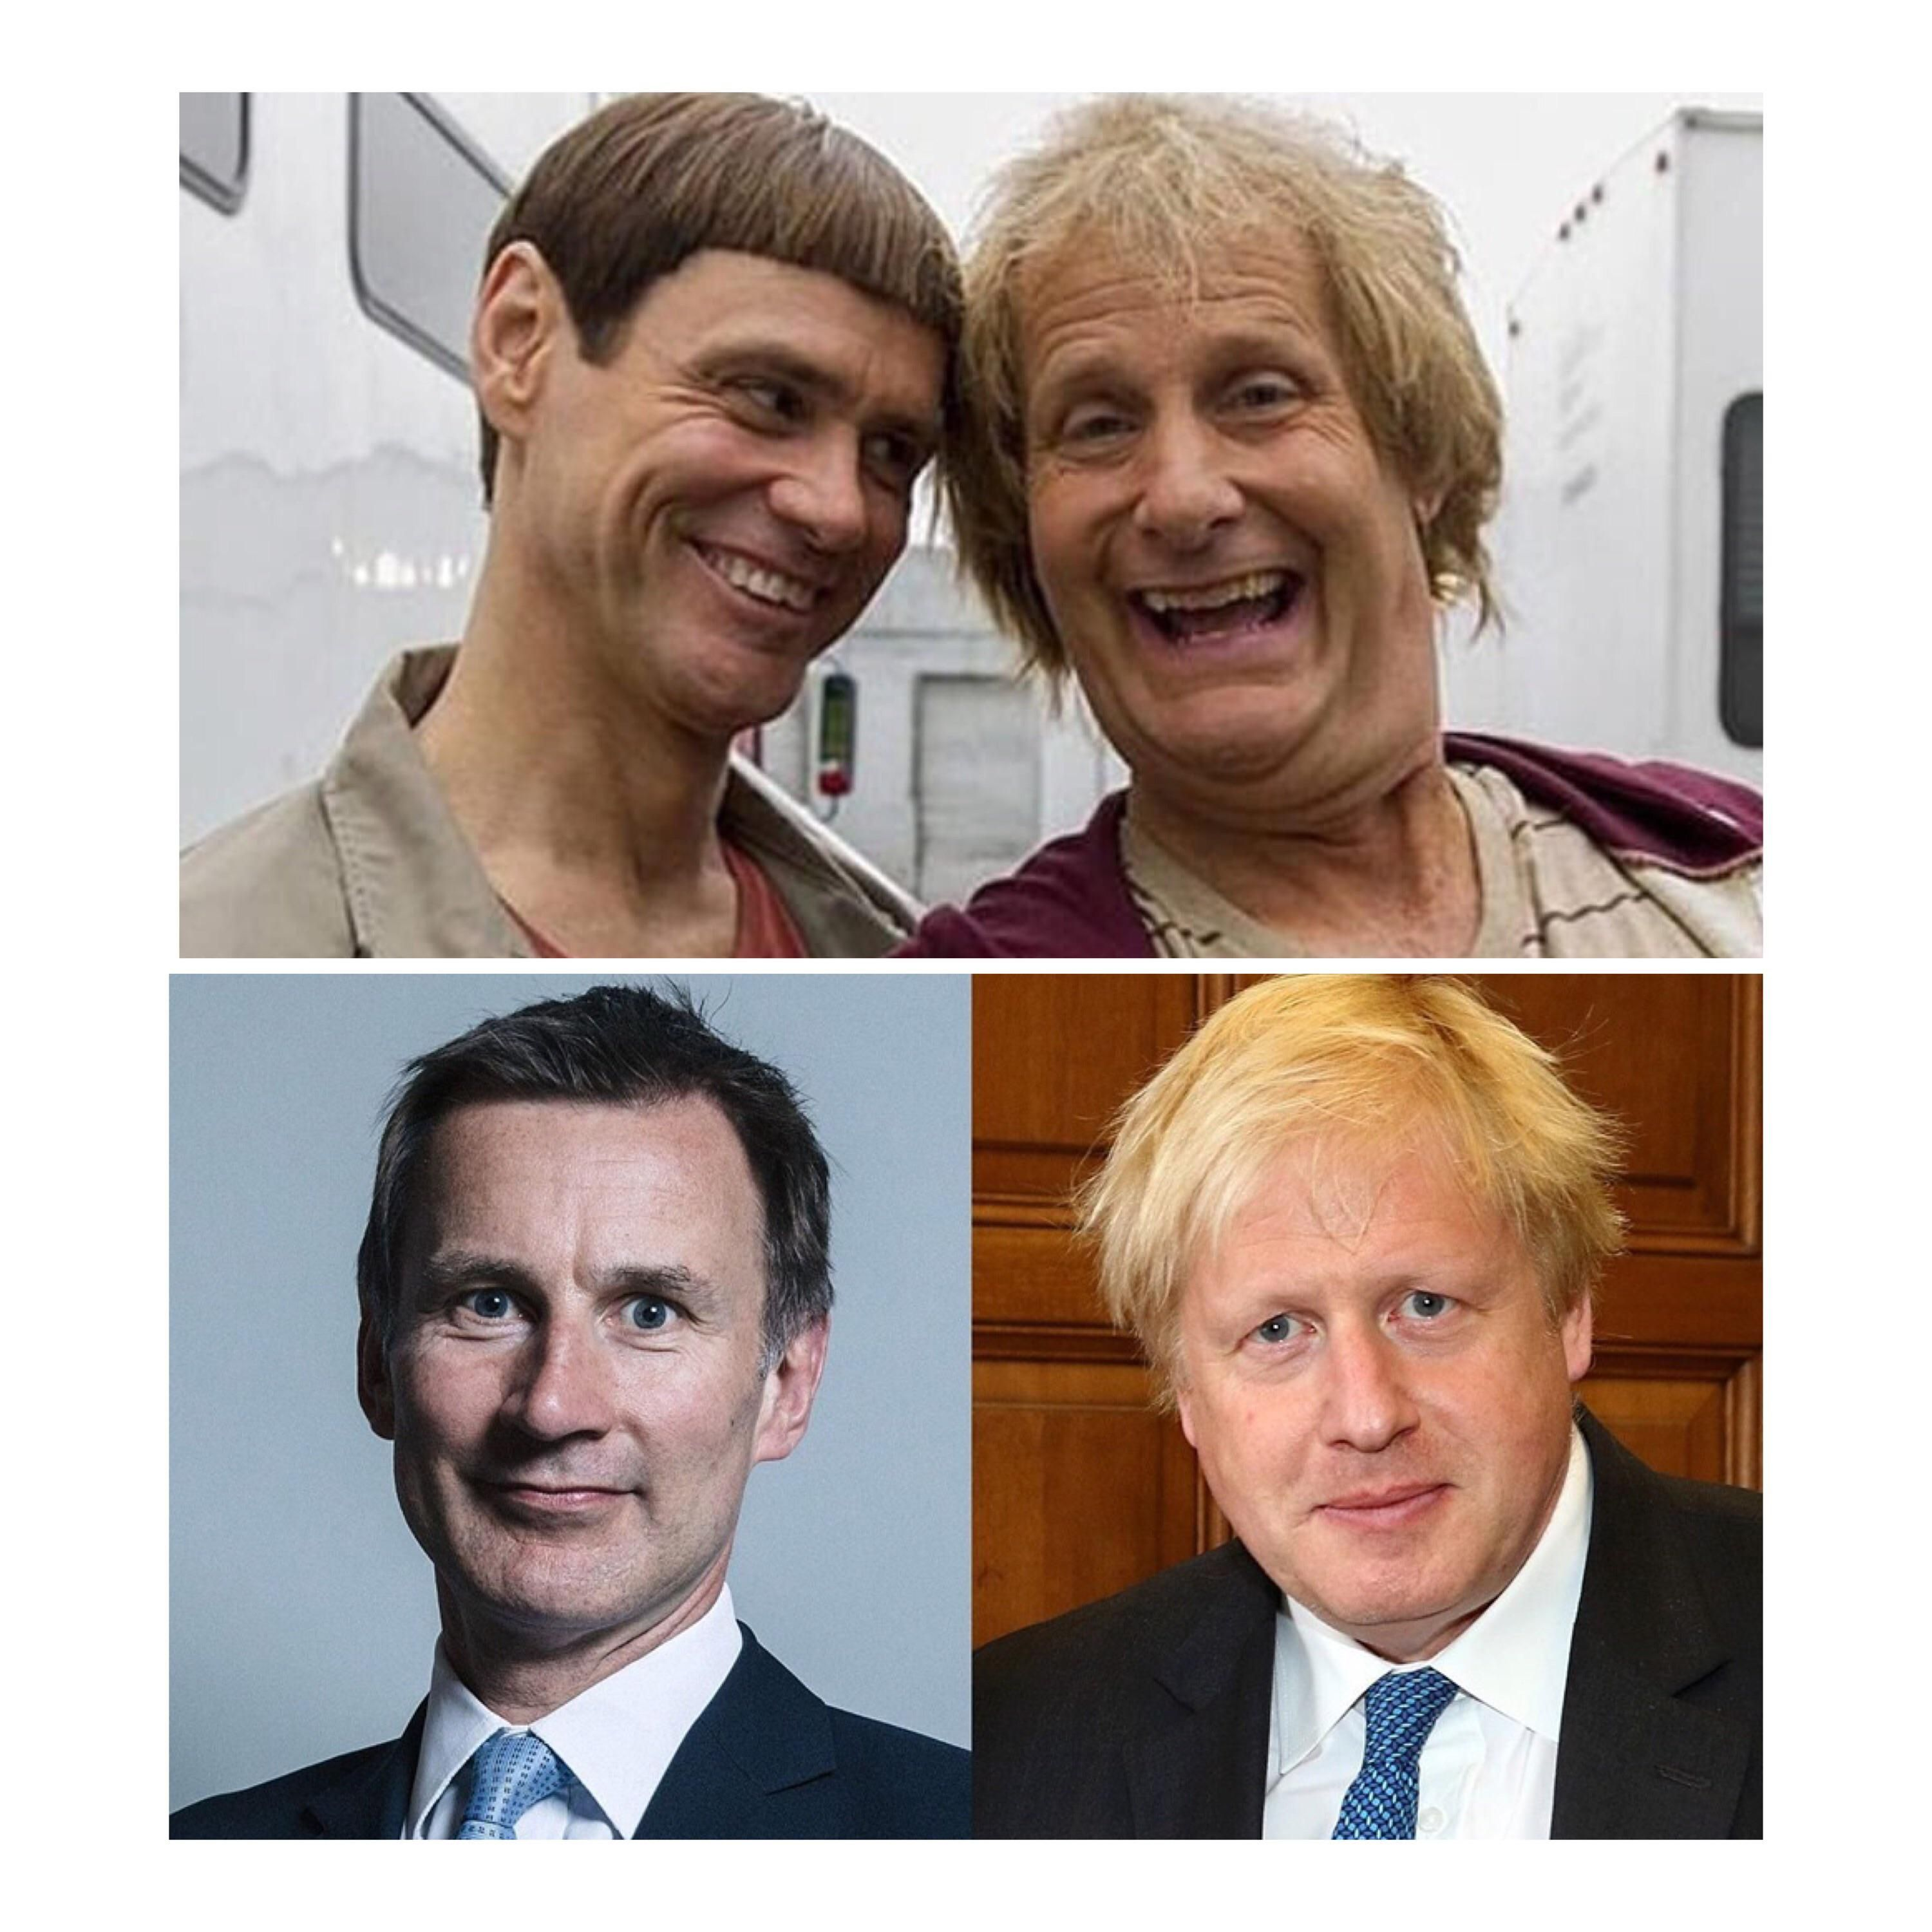 Ladies and gentlemen - the current U.K. leadership contenders.